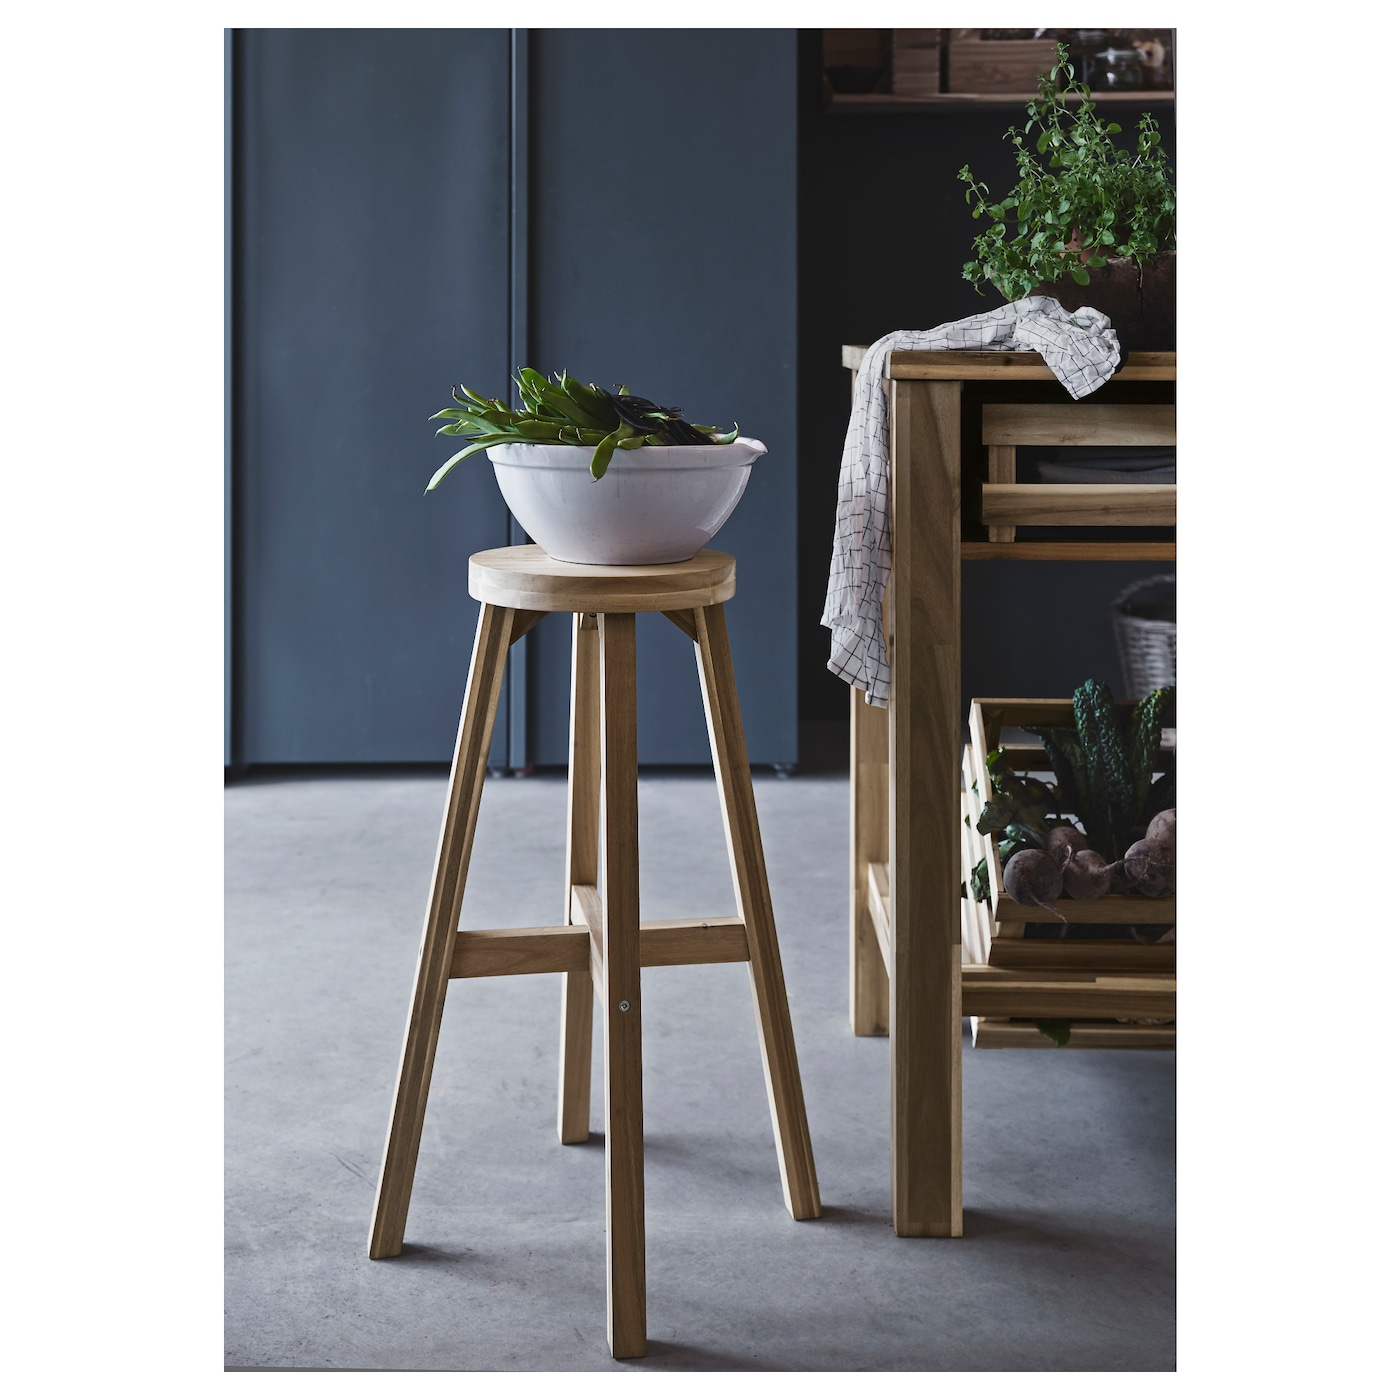 Skogsta bar stool acacia 48x70 cm ikea for Bar stools ikea